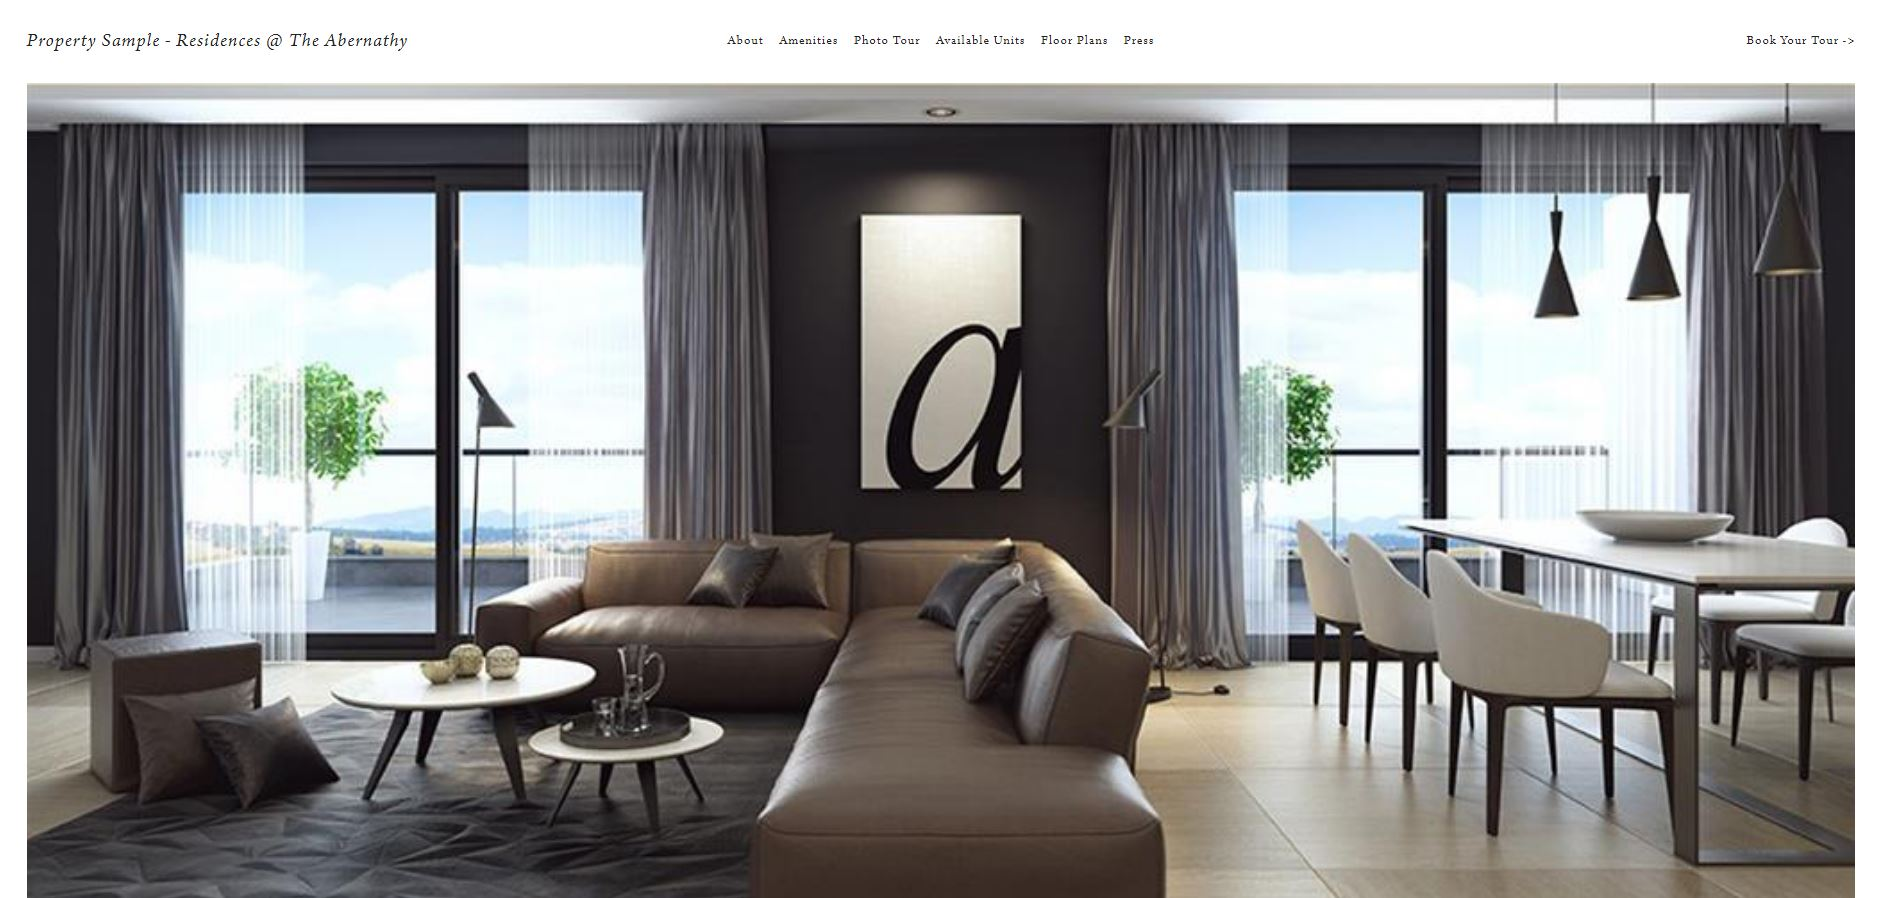 Property sales website focused on aspirational marketing for luxury new development. The site features HD, full screen photos of available units, lobby and common areas, and detailed pictures of amenities. Potential buyers can download floorplans, complete pre-qualification survey, and schedule appointments through the site.